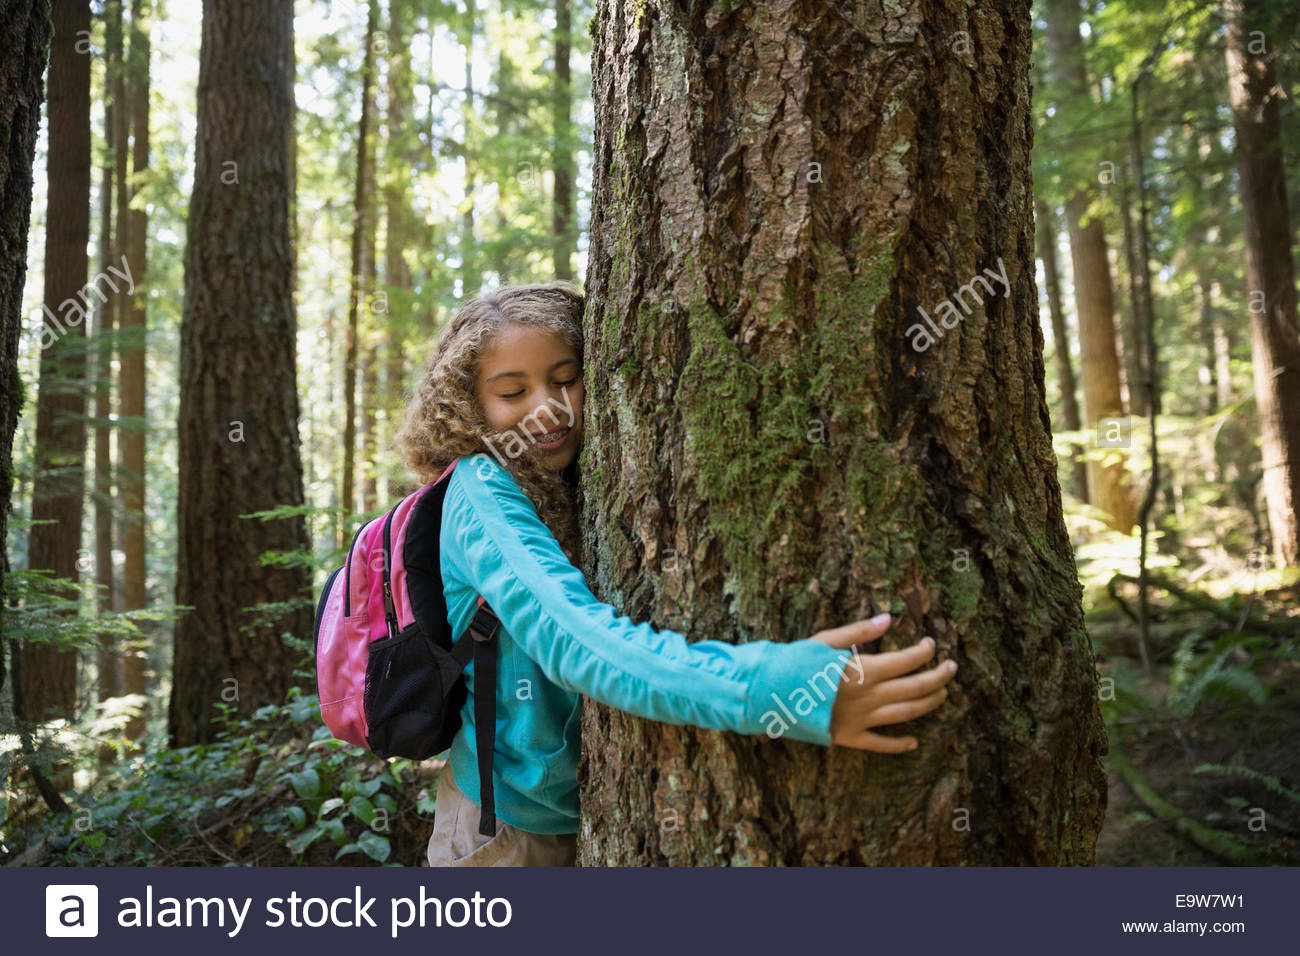 Fille avec sac à dos hugging tree trunk in woods Photo Stock